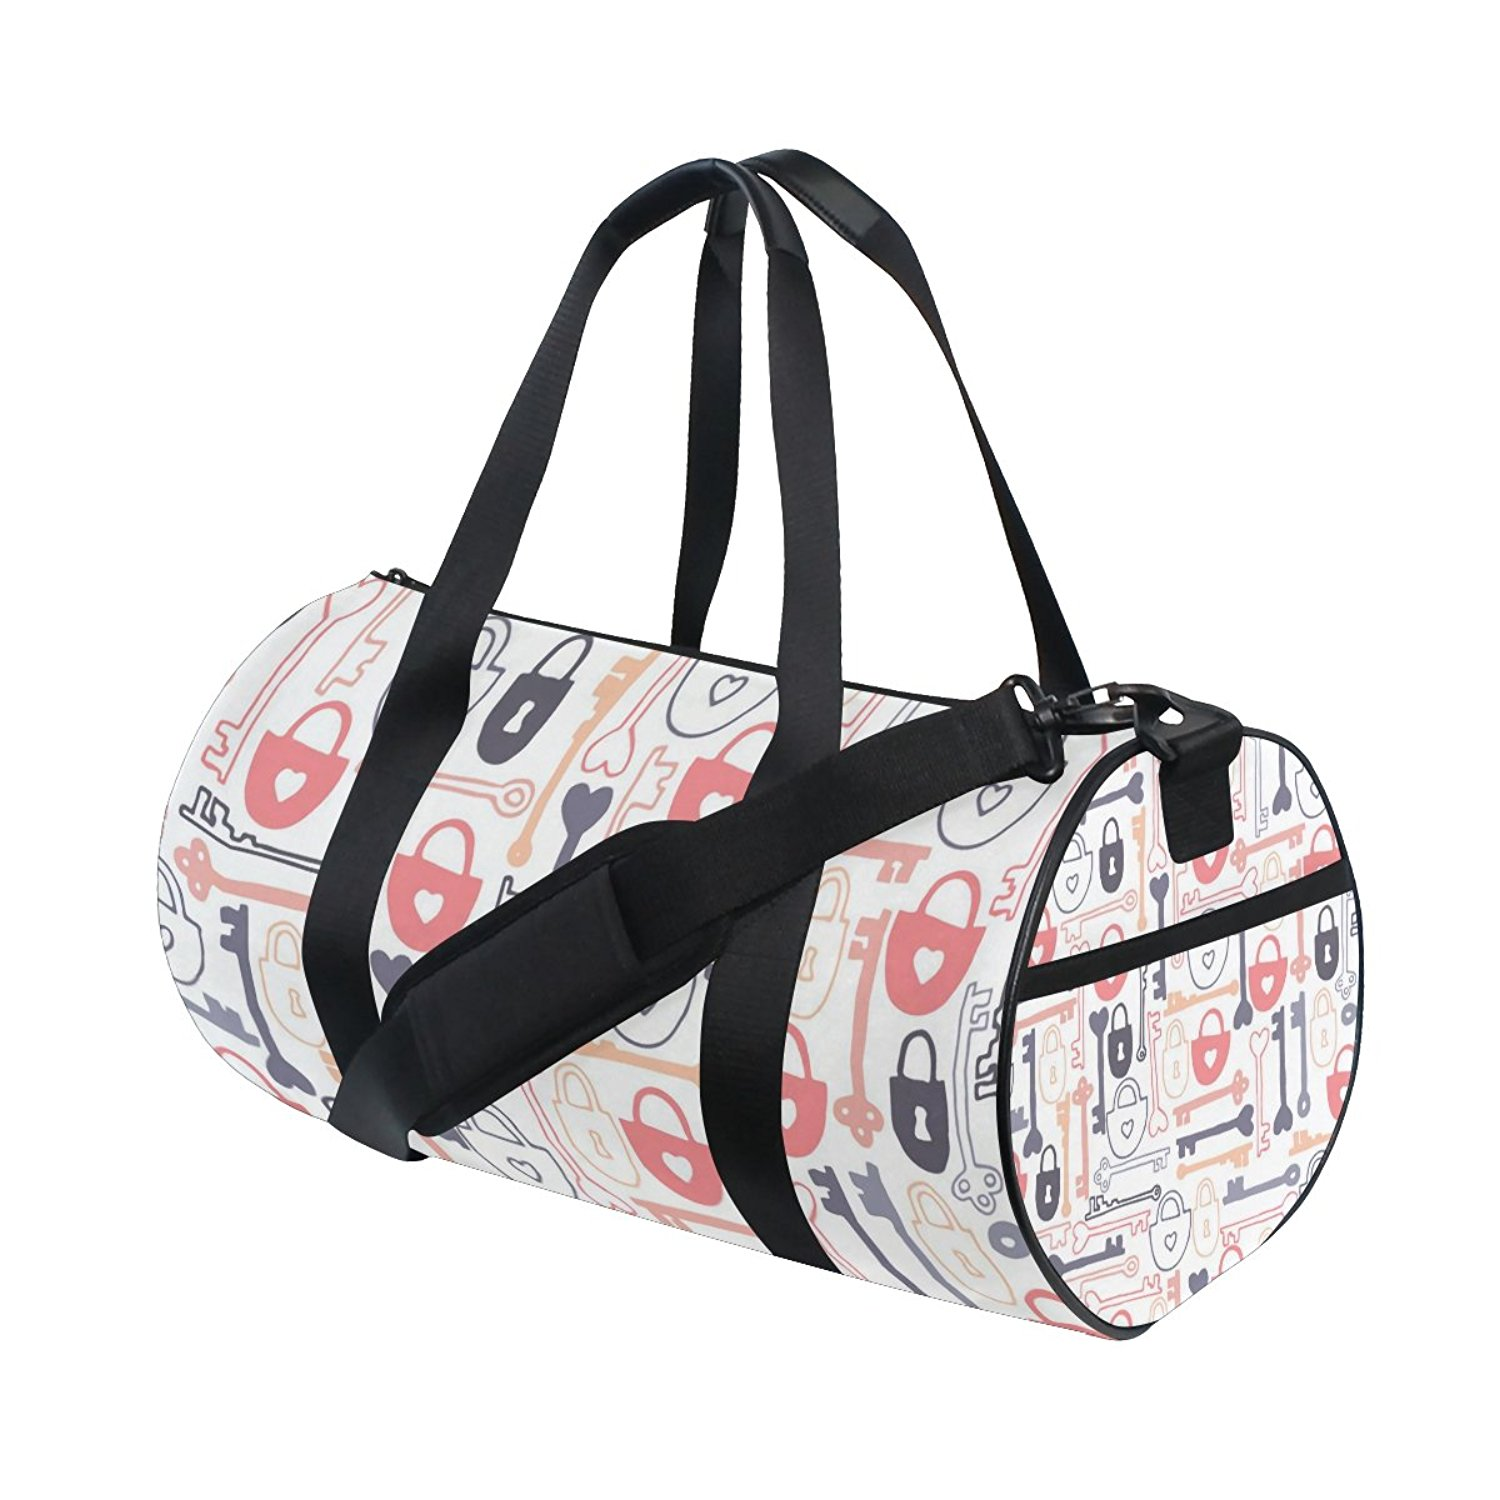 Gym Bag Lock Key Pattern Sports Travel Duffel Lightweight Canvas Bag